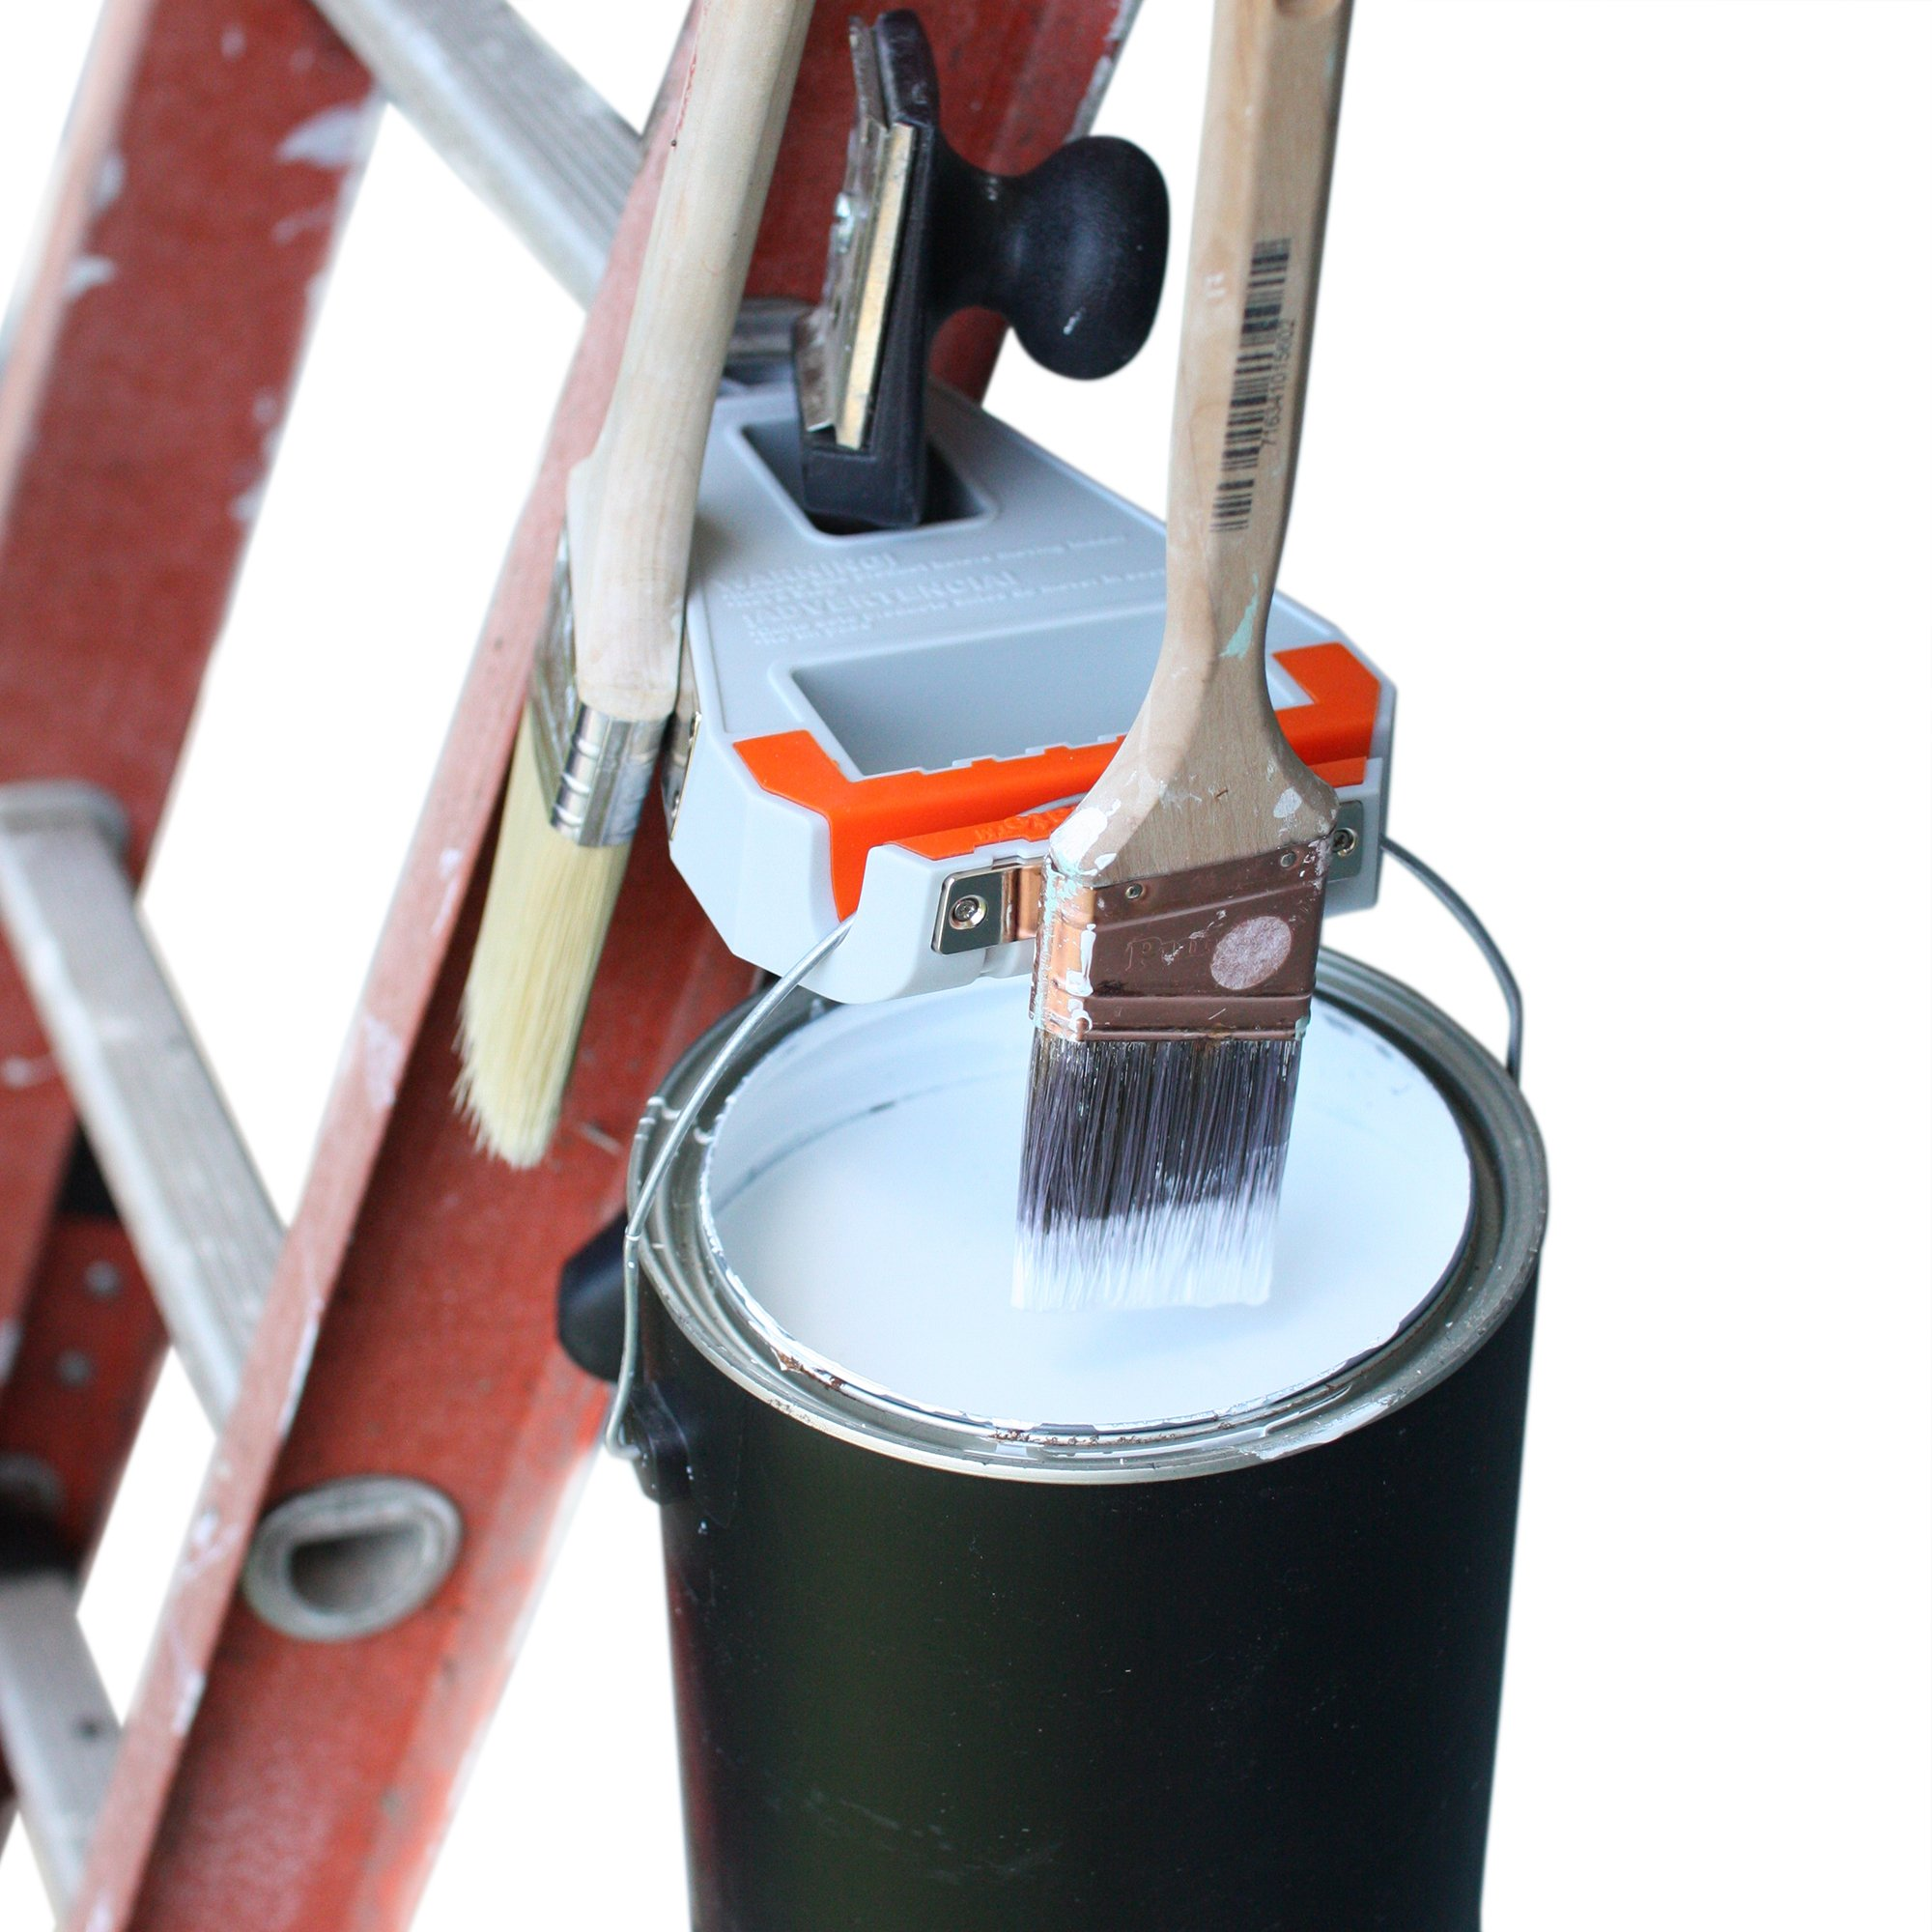 Ladder Station Pro - Paint Brush Holder and Paint Can Holder - Store Paint Brushes, Paint Scraper and Accessory Tools